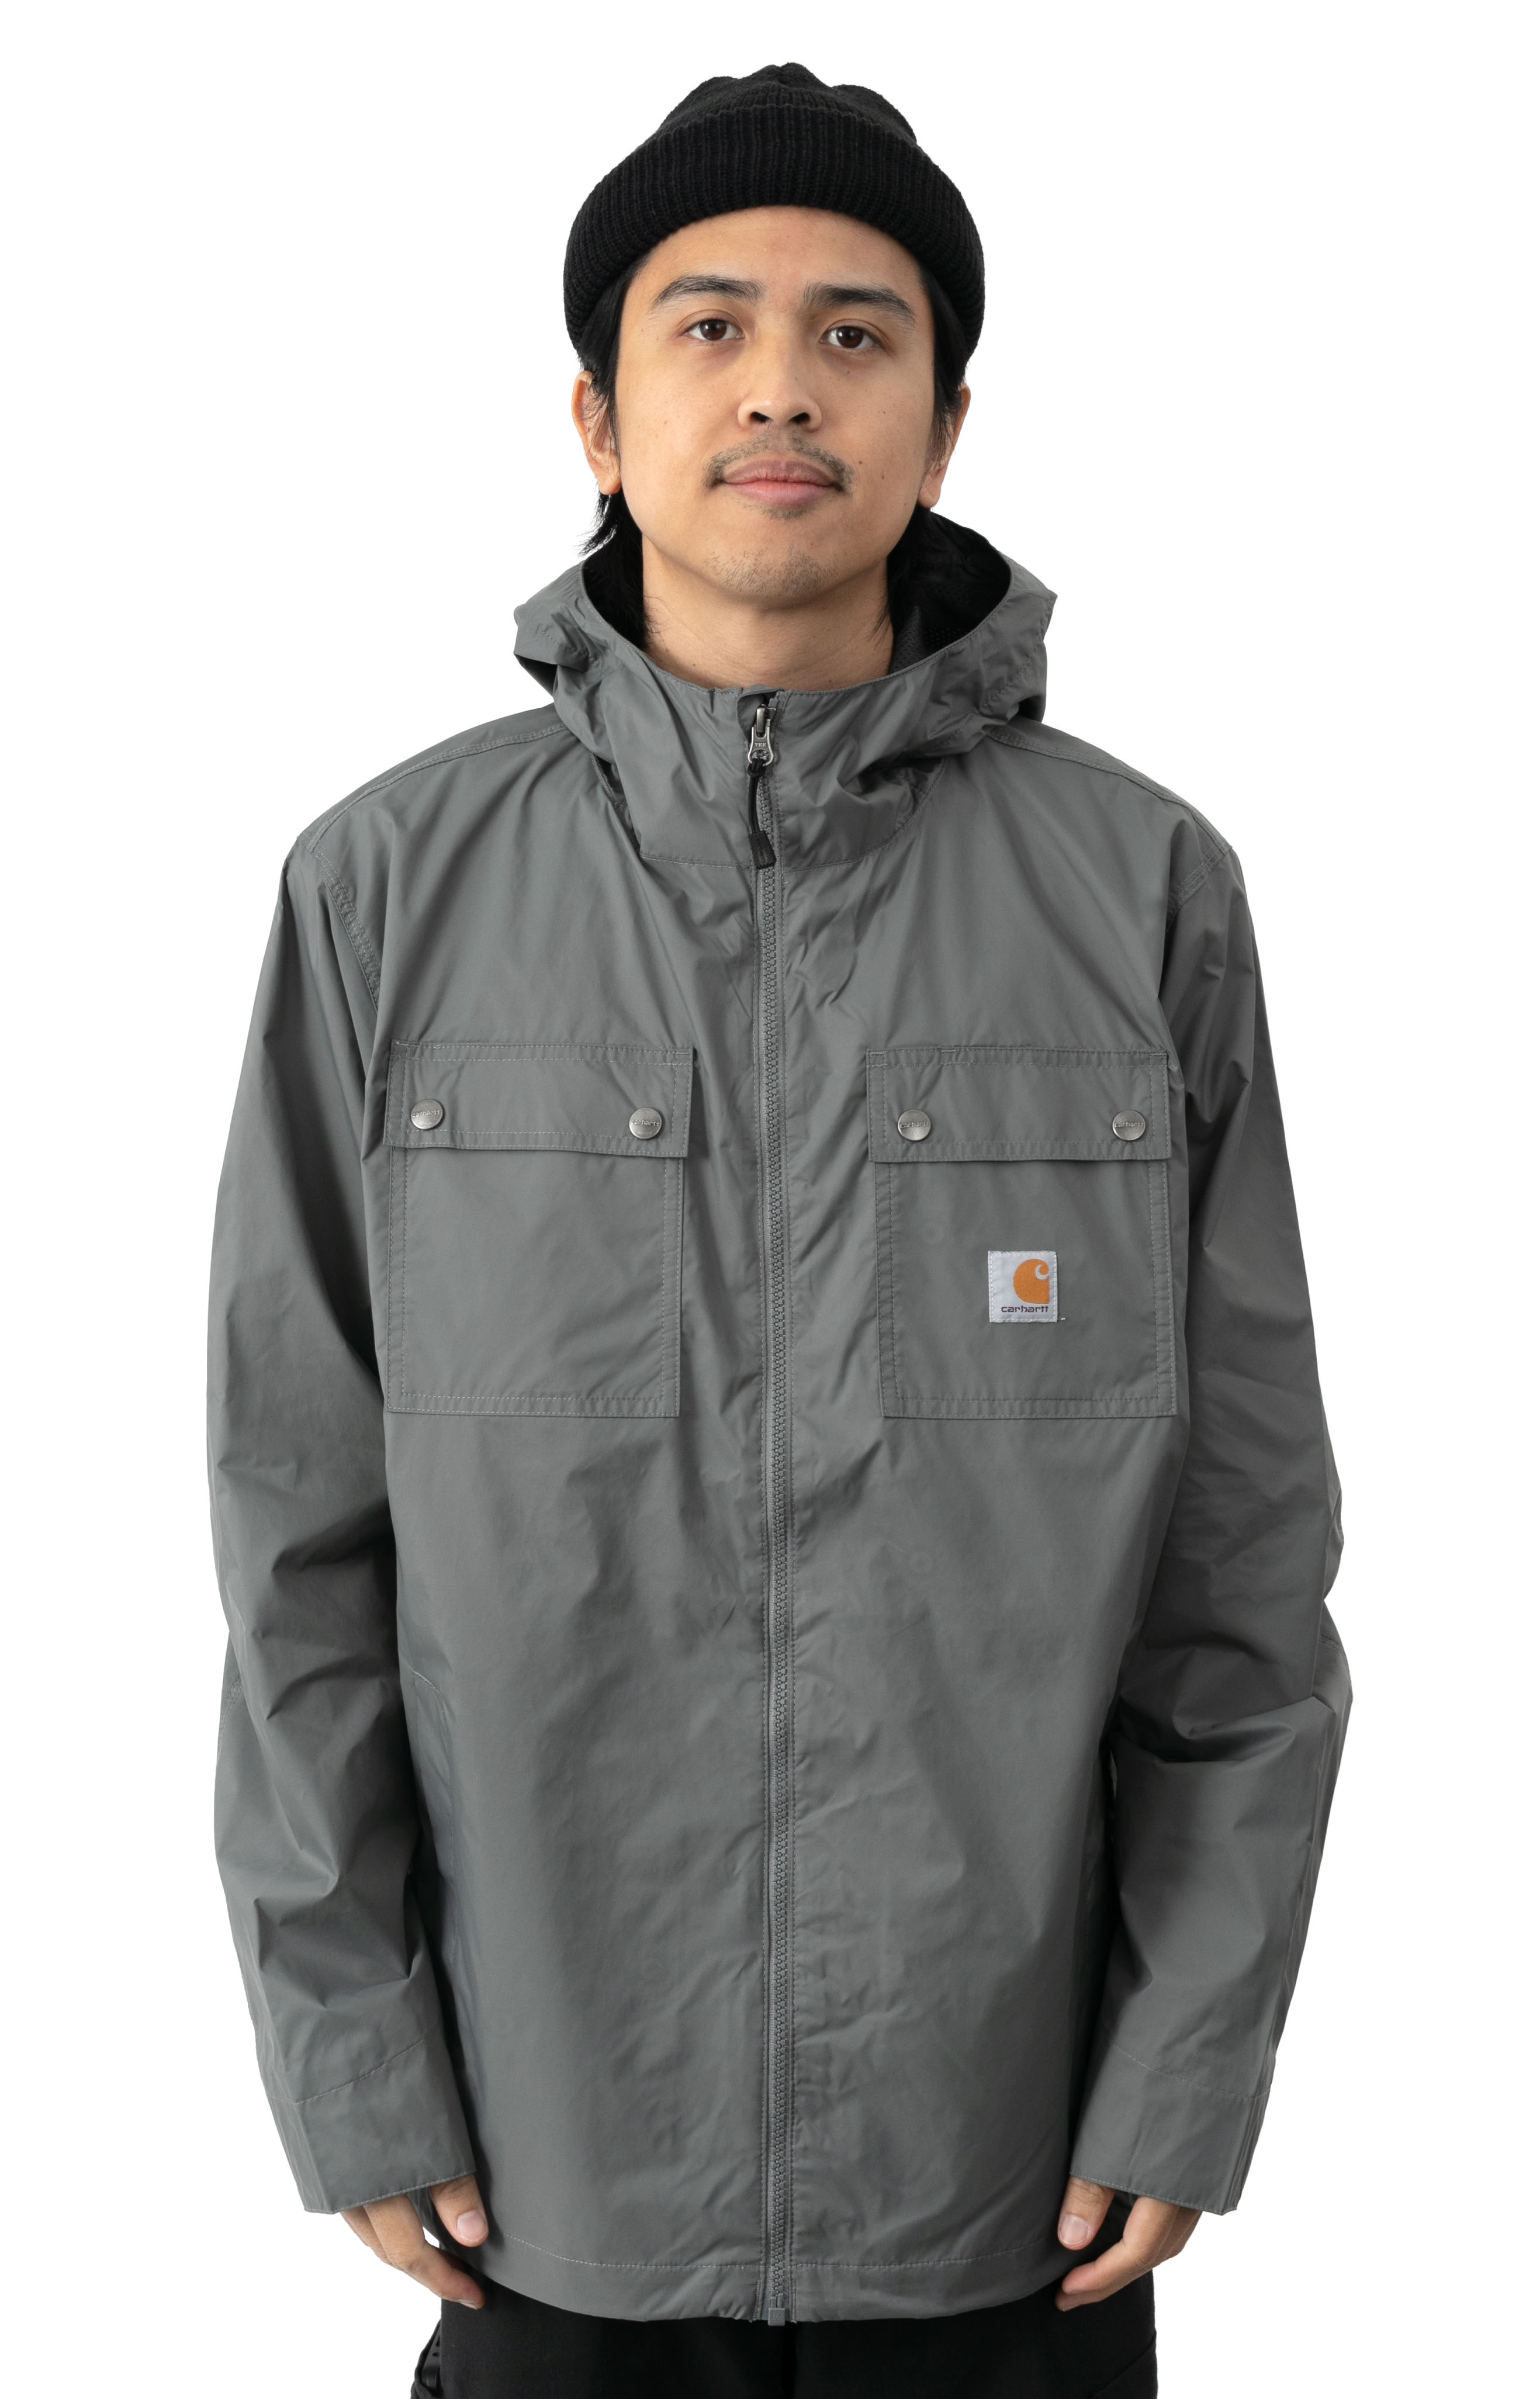 (100247) Rockford Jacket - Steel